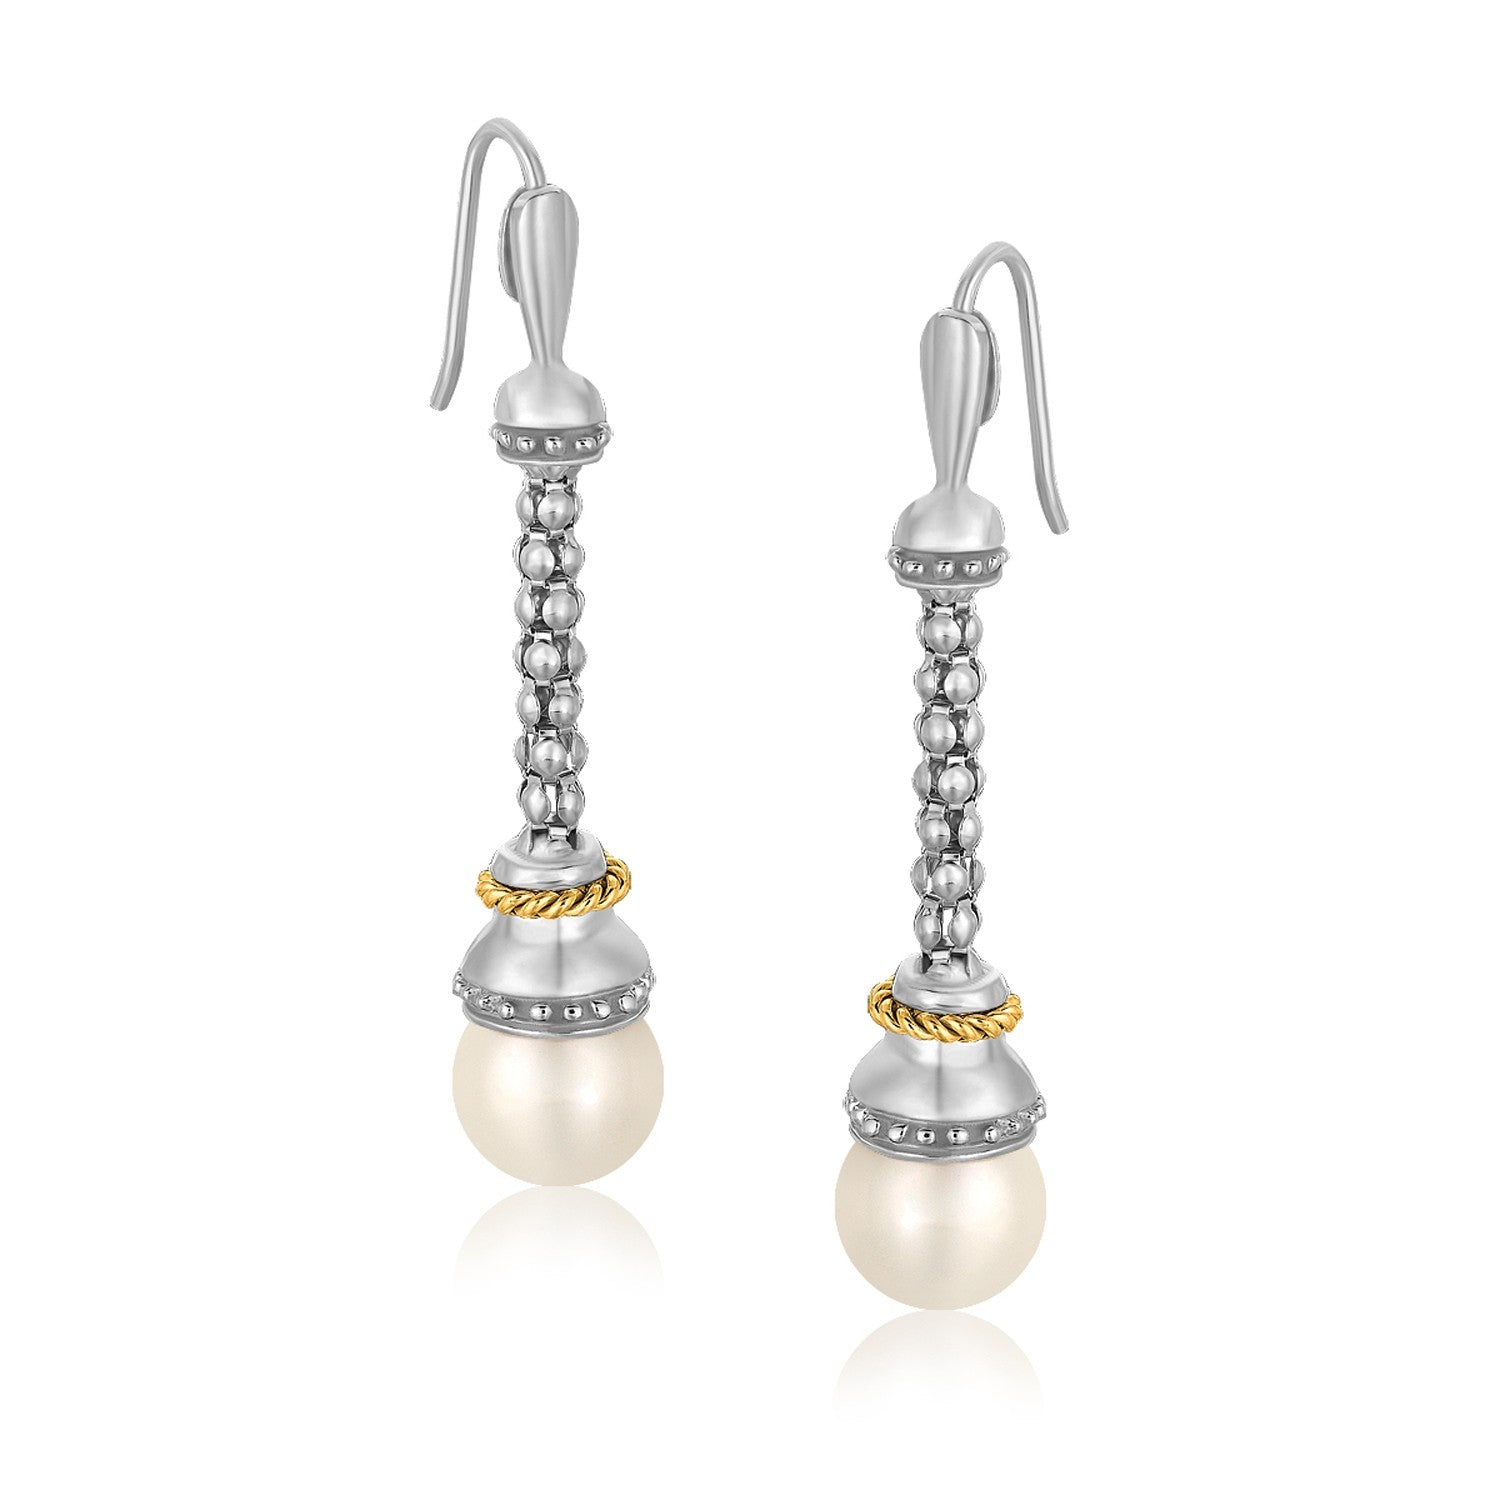 Unique Modern Paris Style 18K Yellow Gold and Sterling Silver Dangling Earrings with Pearl Ends